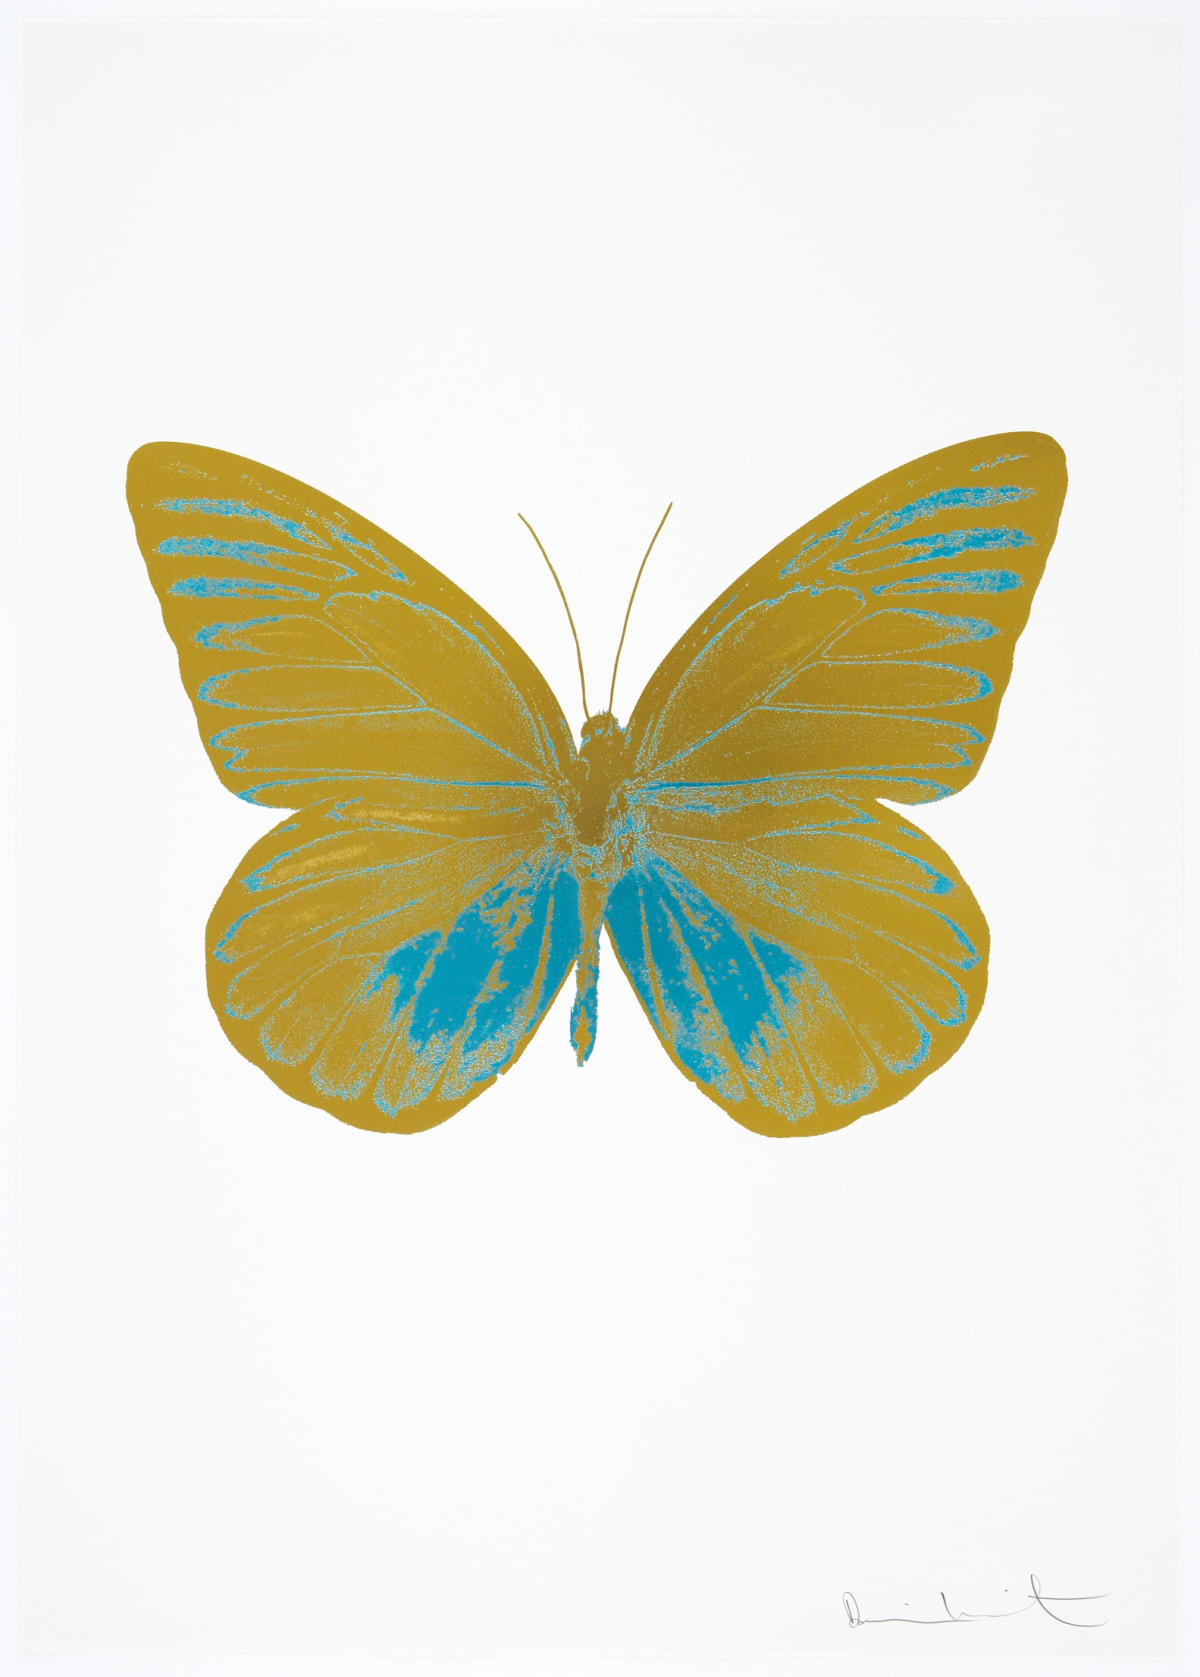 Damien Hirst The Souls I - Oriental Gold/Topaz, 2010 2 colour foil block on 300gsm Arches 88 archival paper. Signed and numbered. Published by Paul Stolper and Other Criteria 72 x 51cm OC7783 / 659-46 Edition of 15